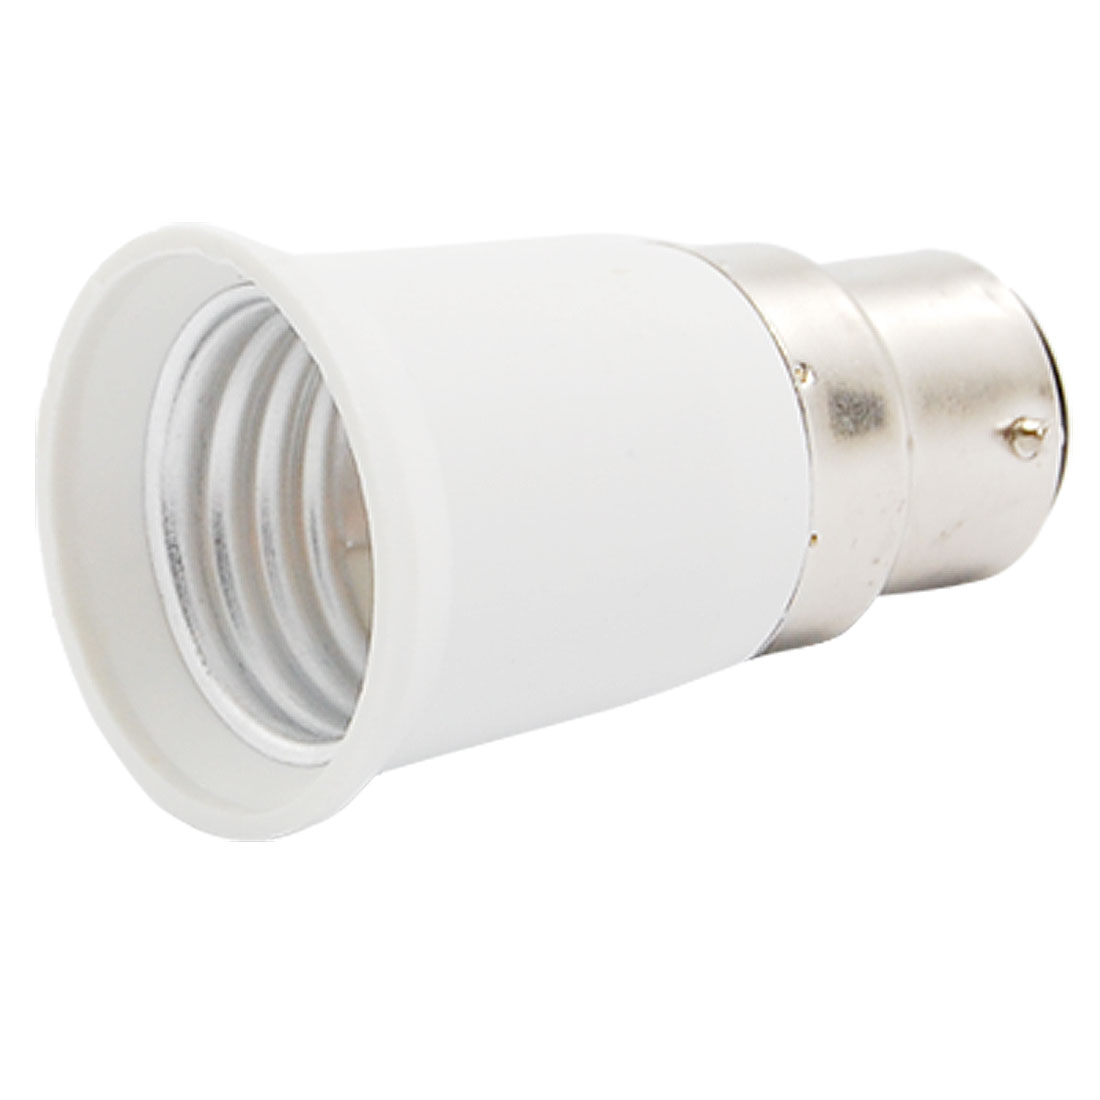 B22 to E27 Base LED Light Lamp Bulb Holder Adapter Converter